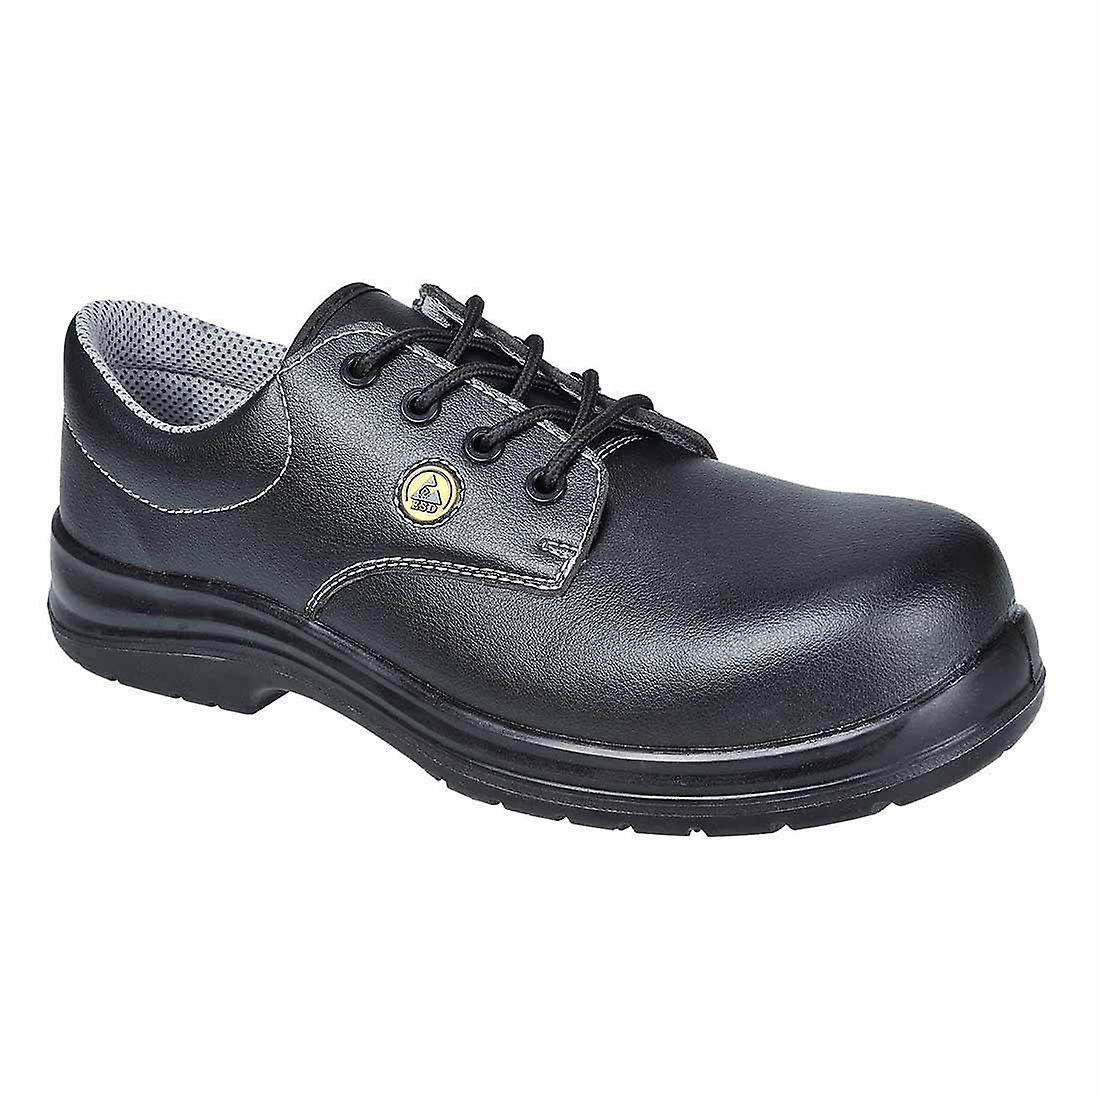 Portwest - Compositelite ESD Laced Work Safety Shoe S2